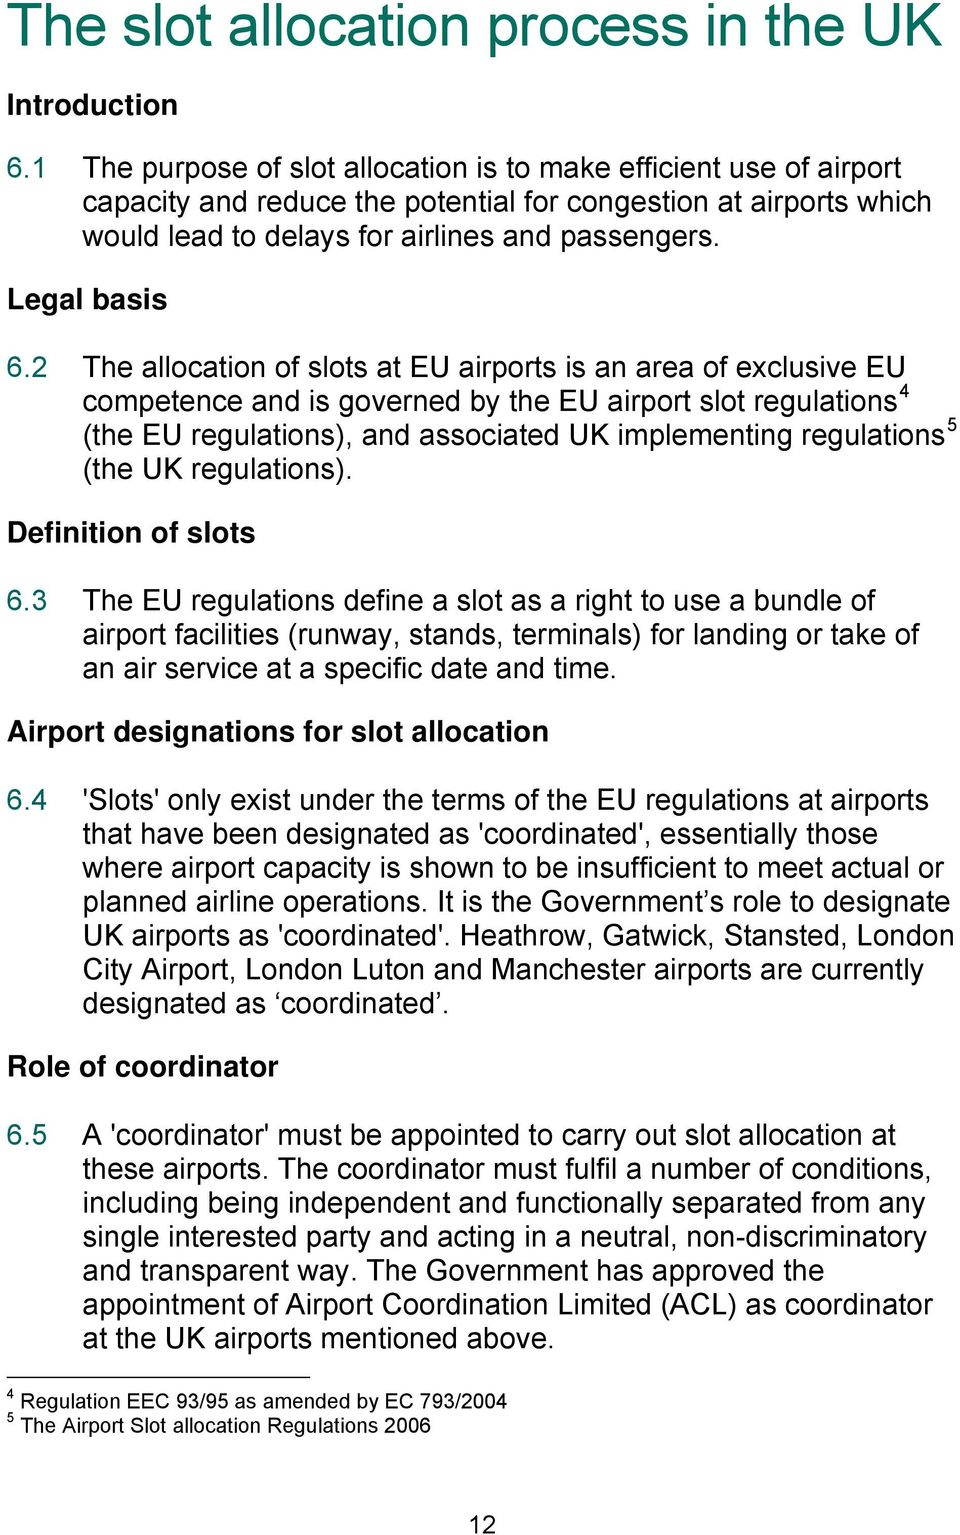 2 The allocation of slots at EU airports is an area of exclusive EU competence and is governed by the EU airport slot regulations 4 (the EU regulations), and associated UK implementing regulations 5